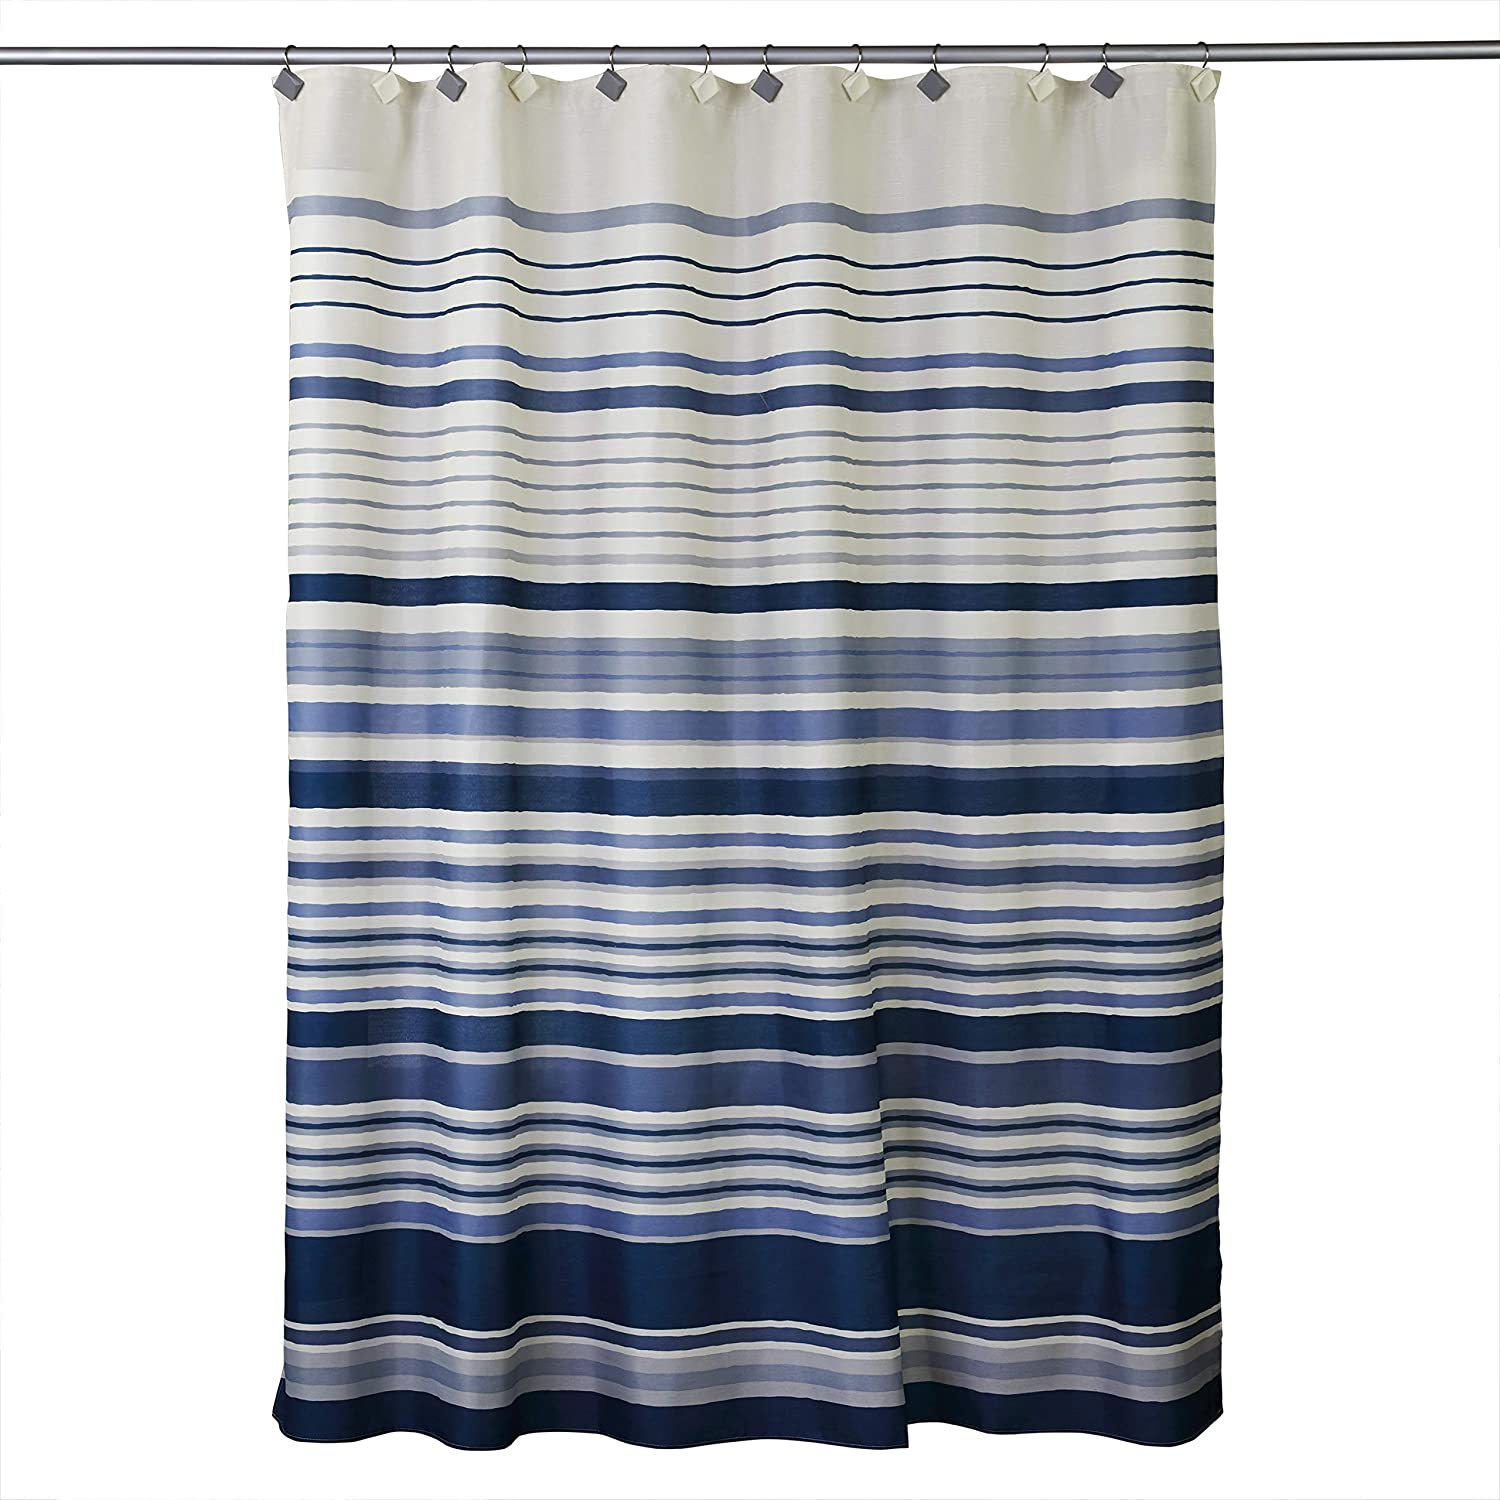 Skl Home By Saturday Knight Ltd Cubes Stripe Fabric Shower Curtain Blue Home Kitchen